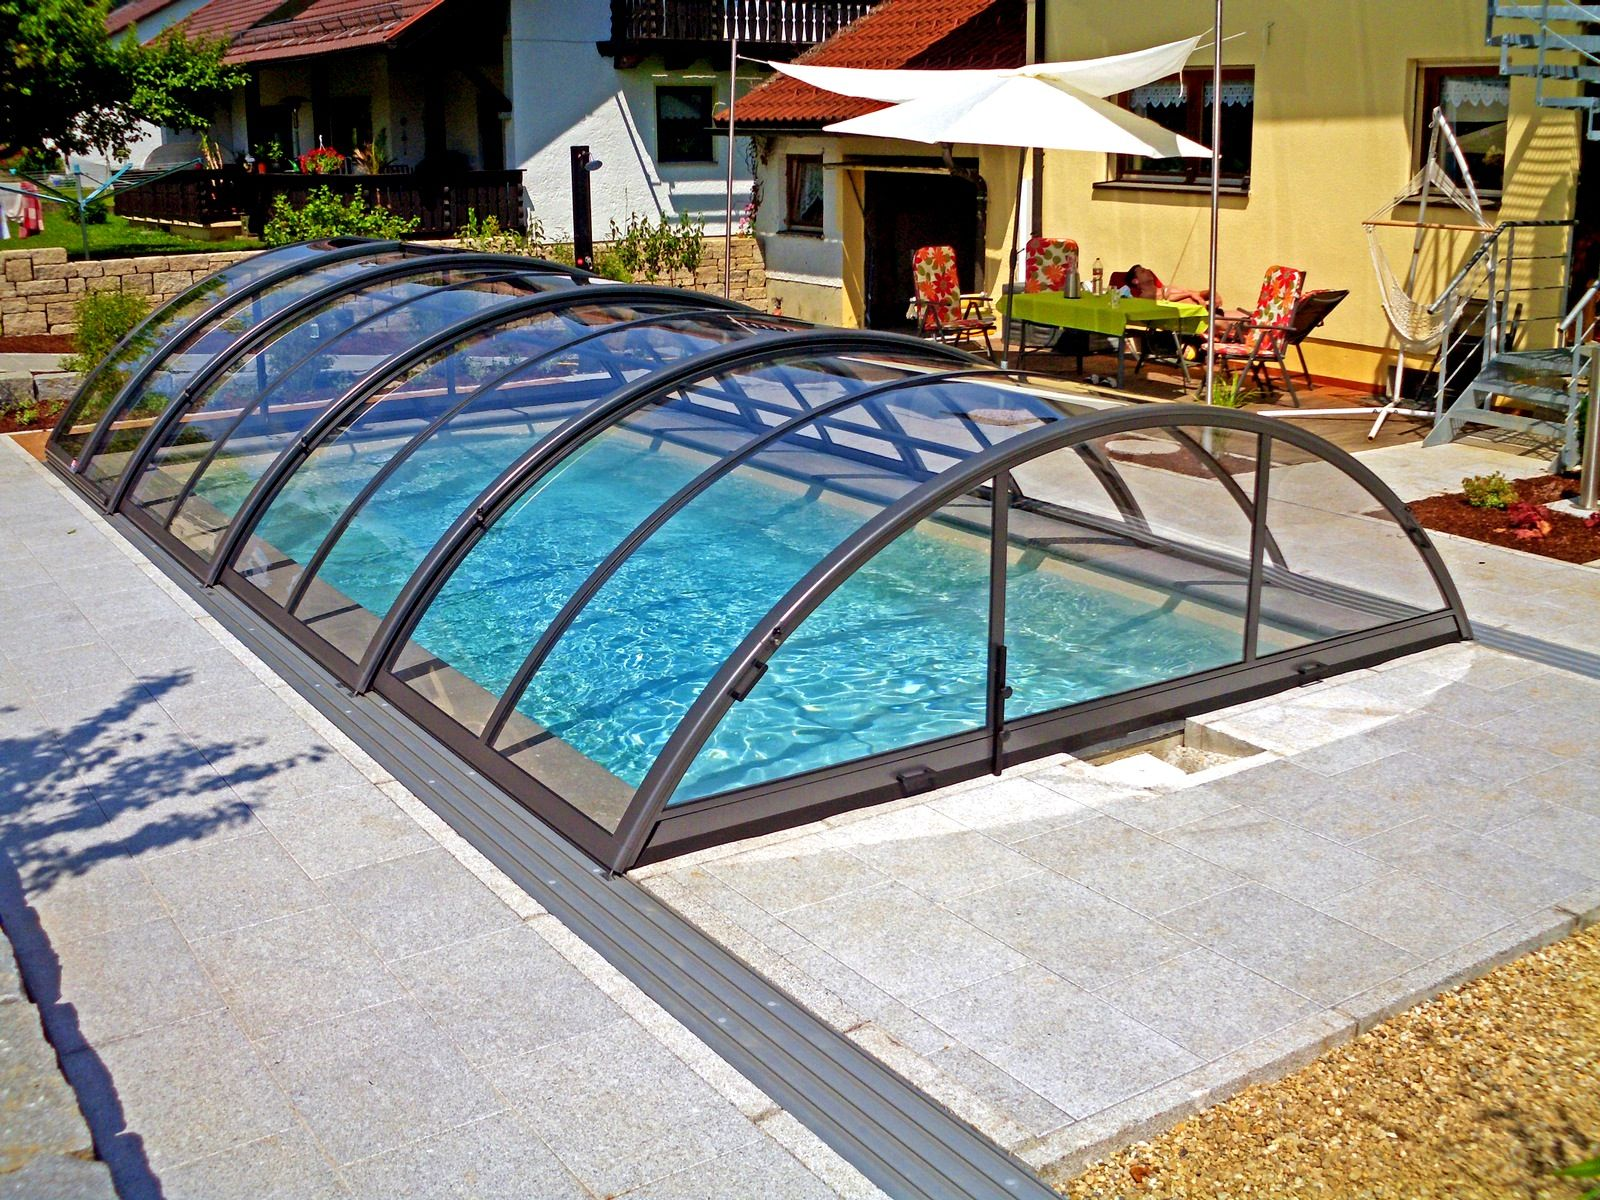 Inflatable furniture  FurniturePretty Pool Enclosures Ipc Team Patio And Pensacola